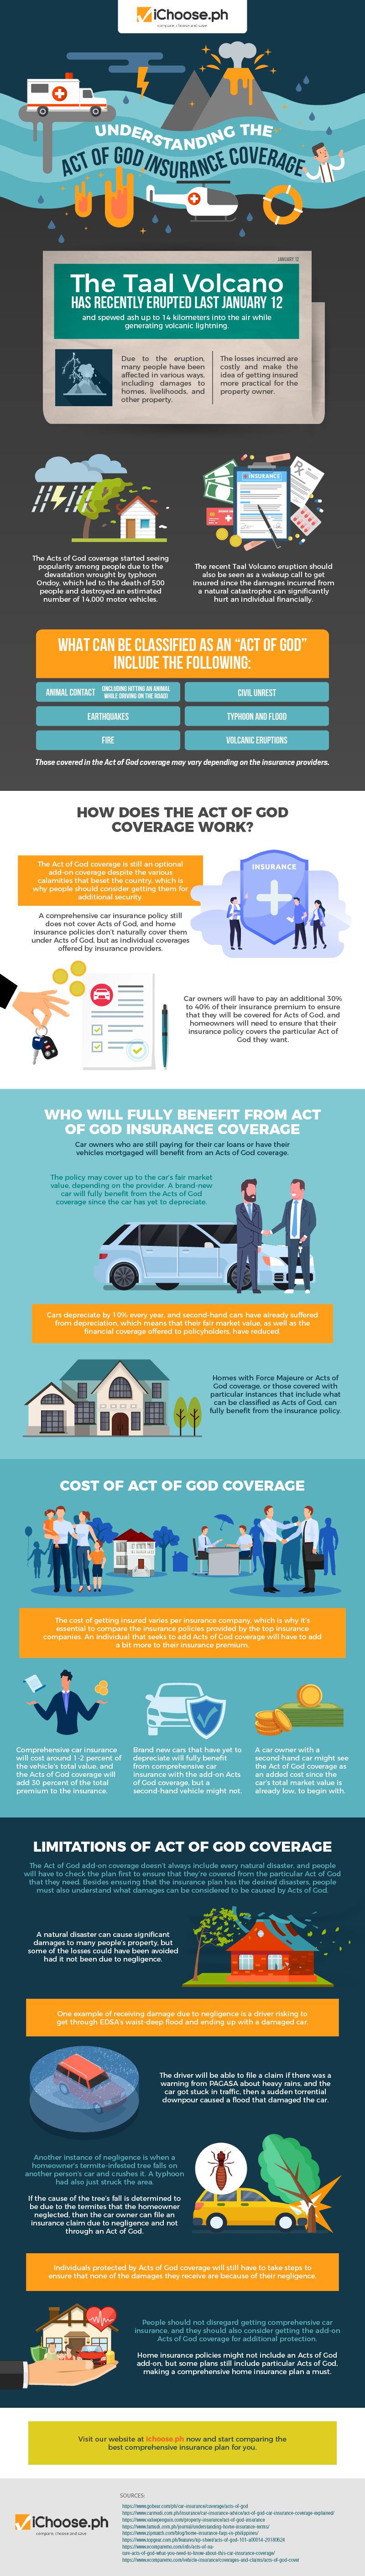 Understanding the Act of God Insurance Coverage-01